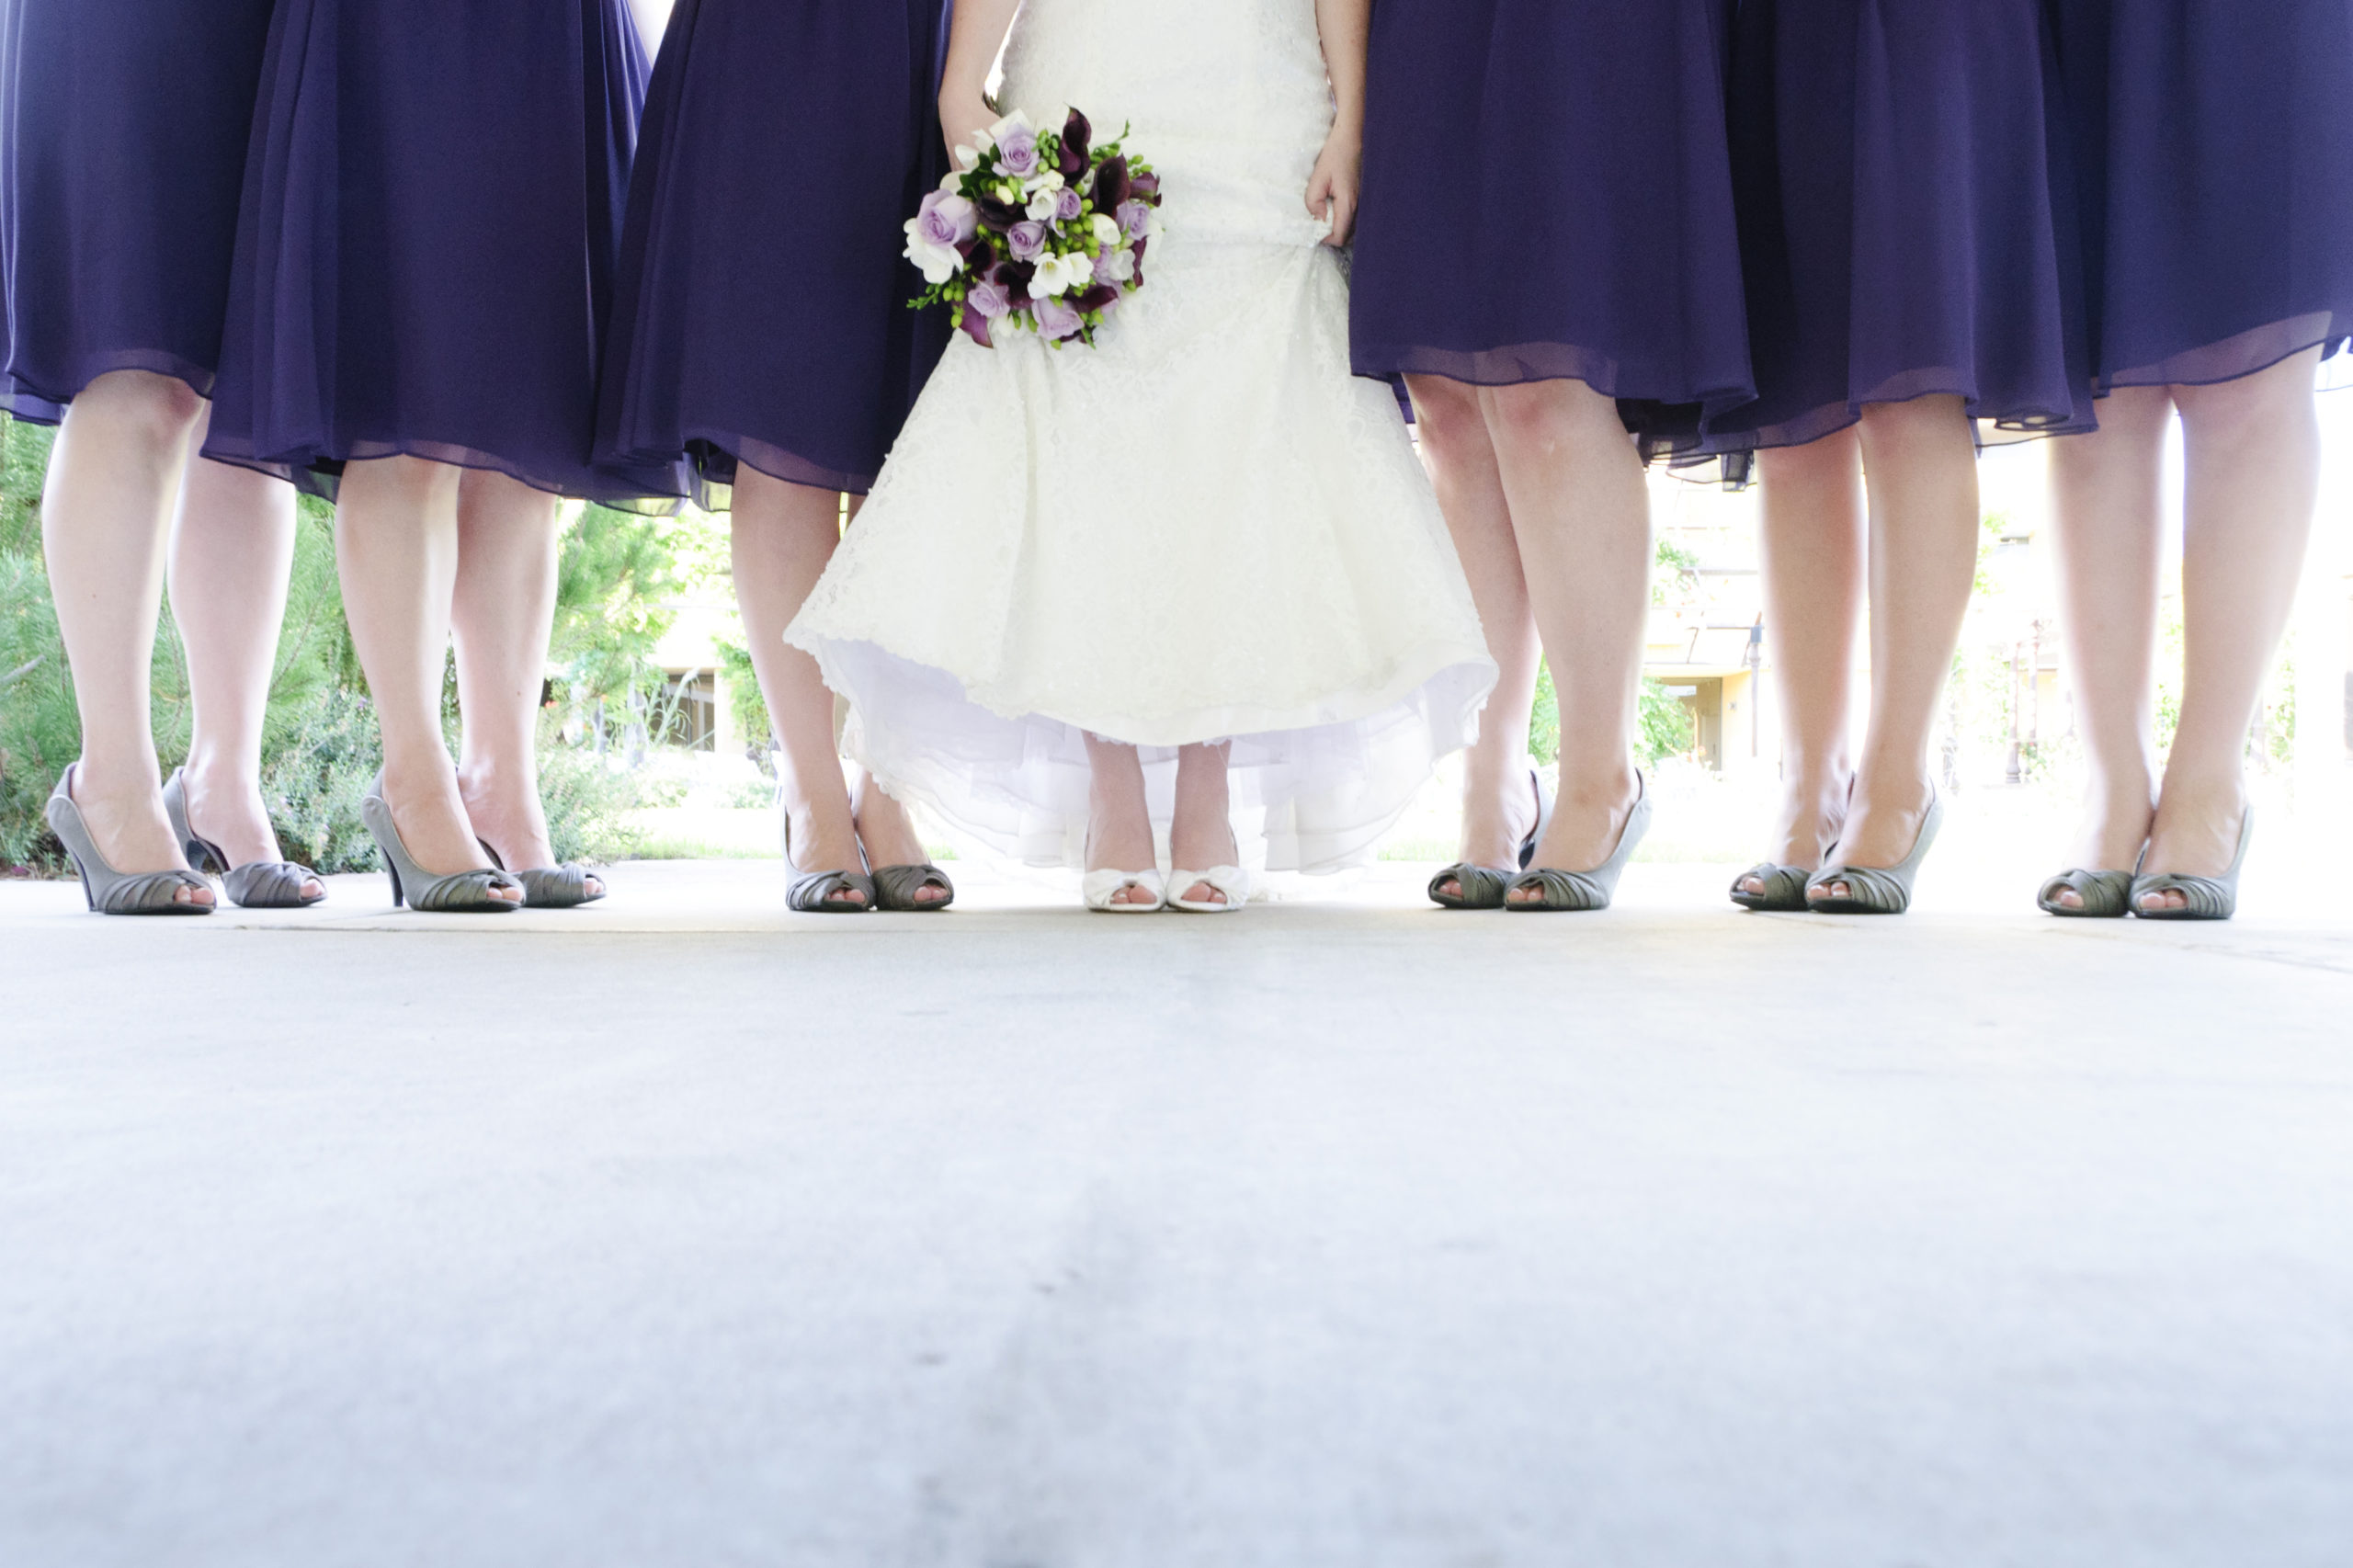 WTF? A Bride Is Holding an Auction Where Her Friends Can Bid to be Bridesmaids